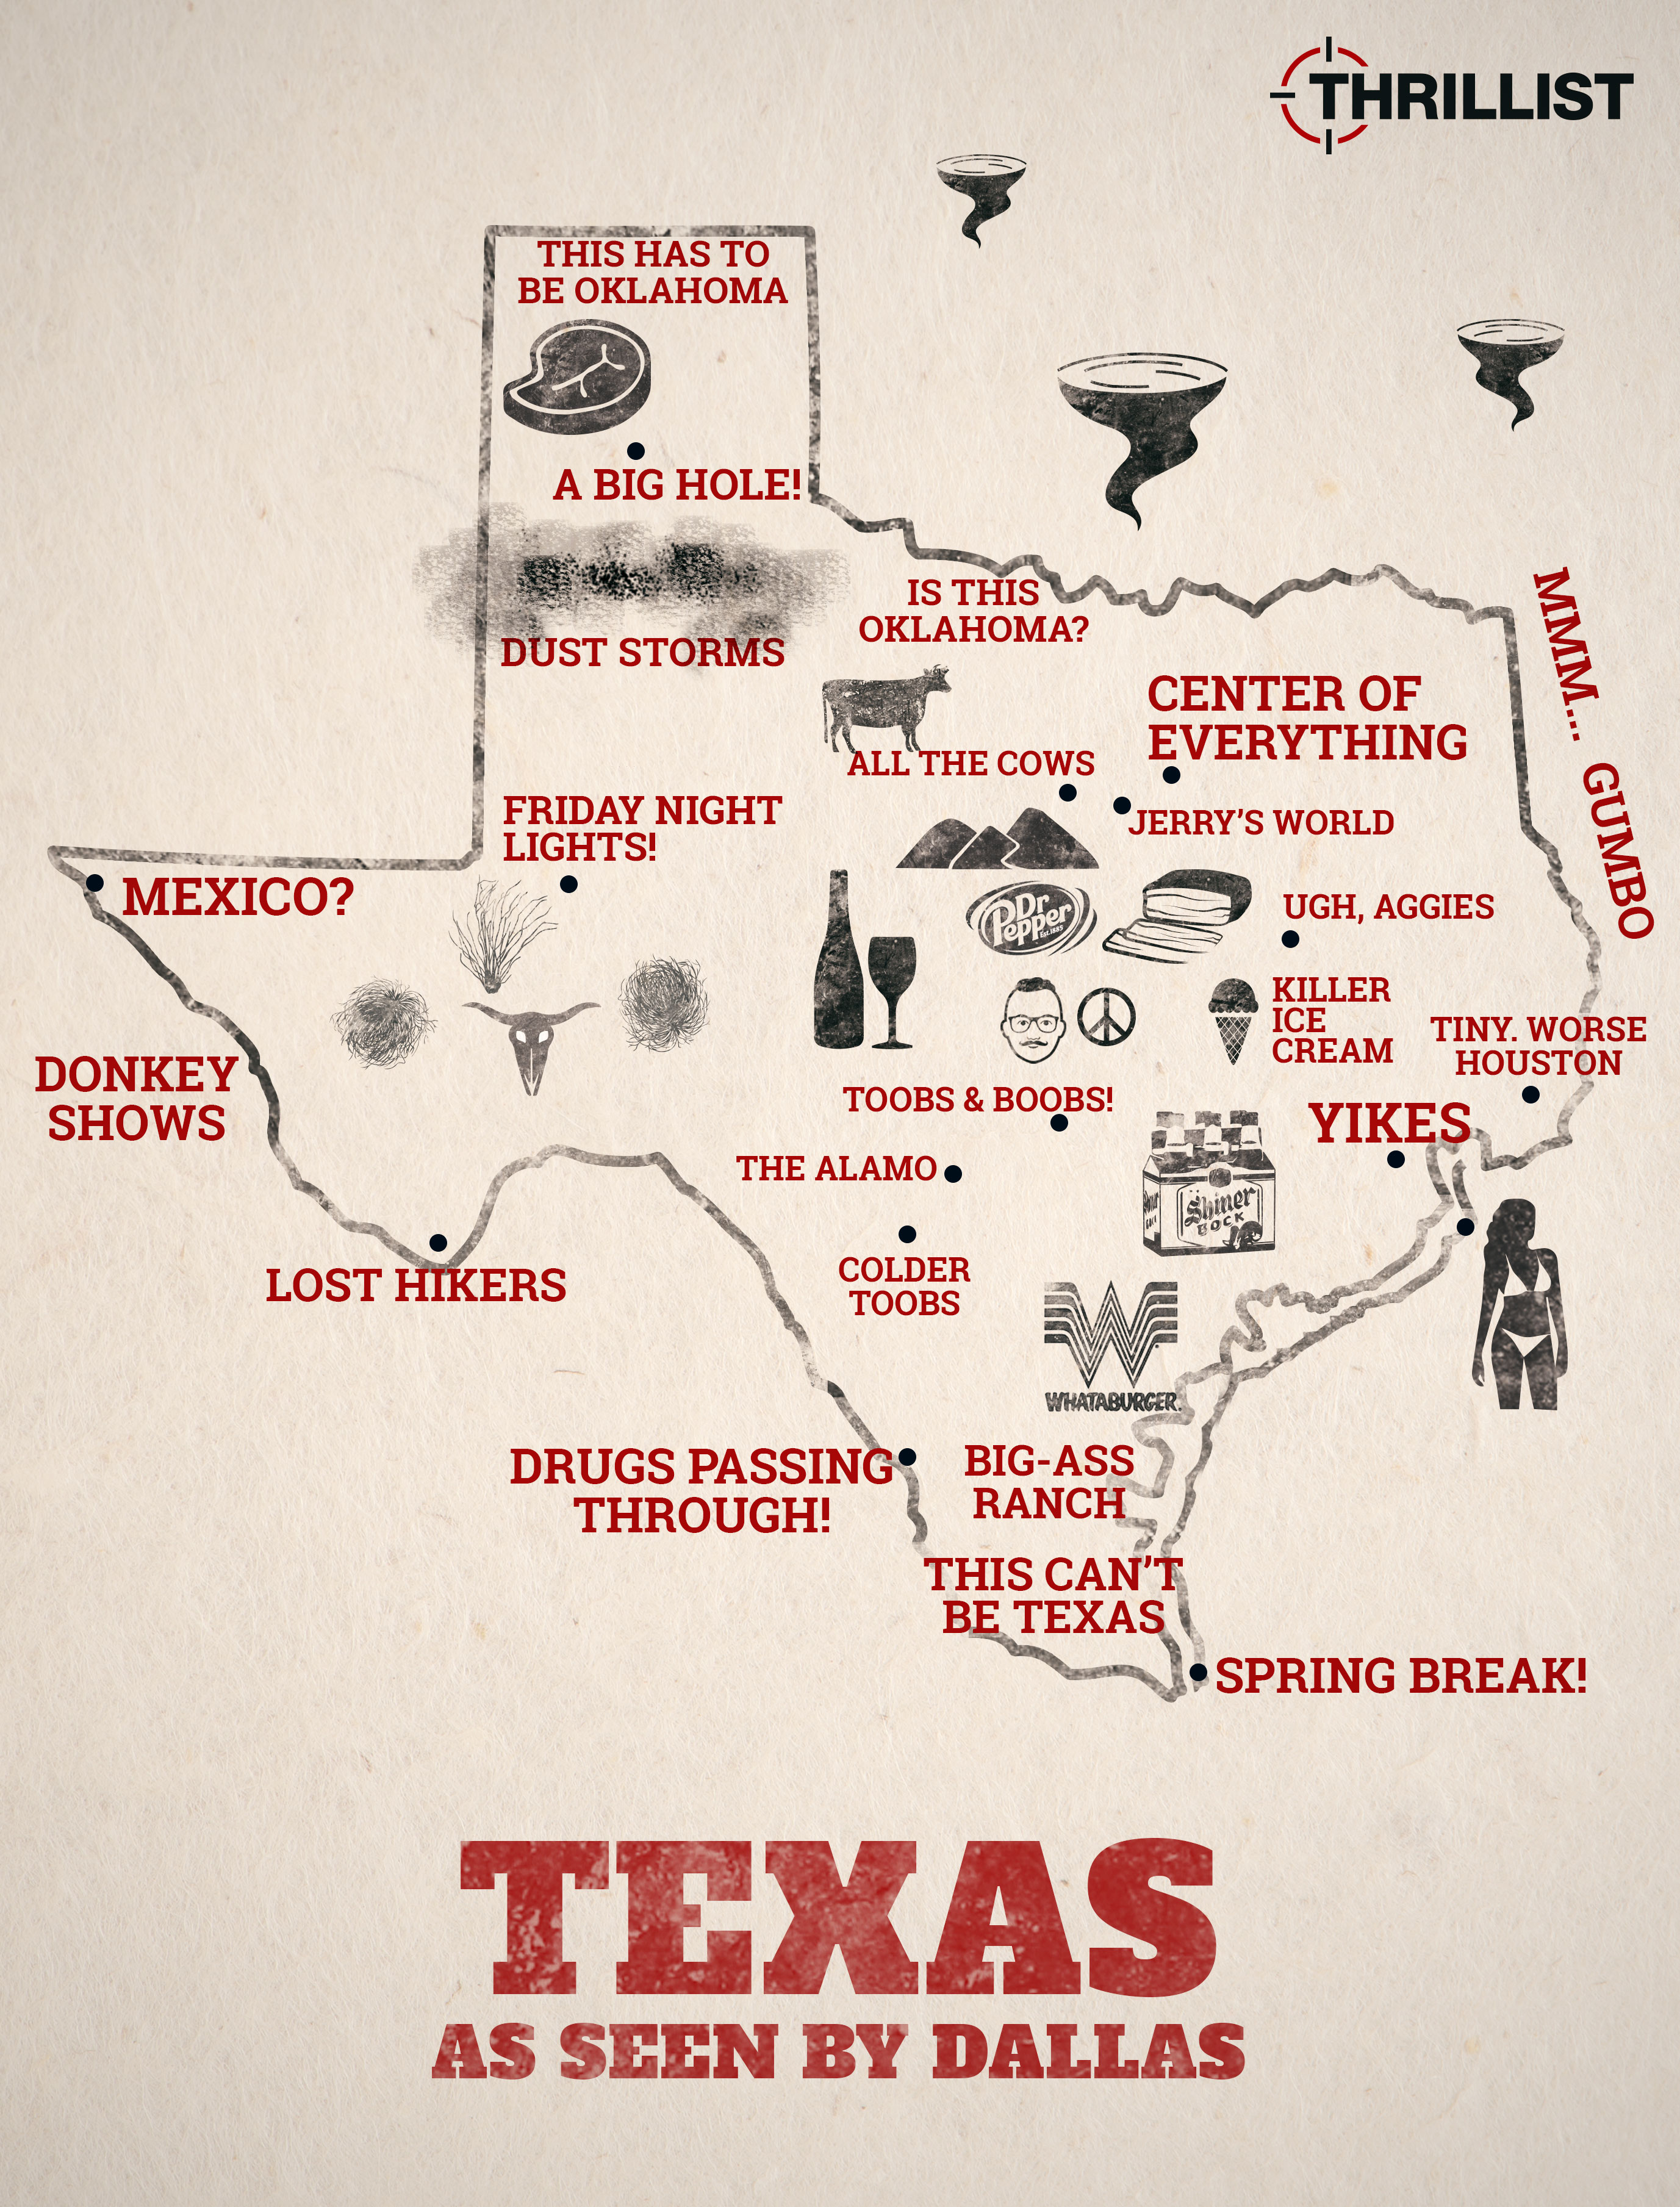 Map How Dallas Sees The Rest Of Texas Thrillist - The map of texas